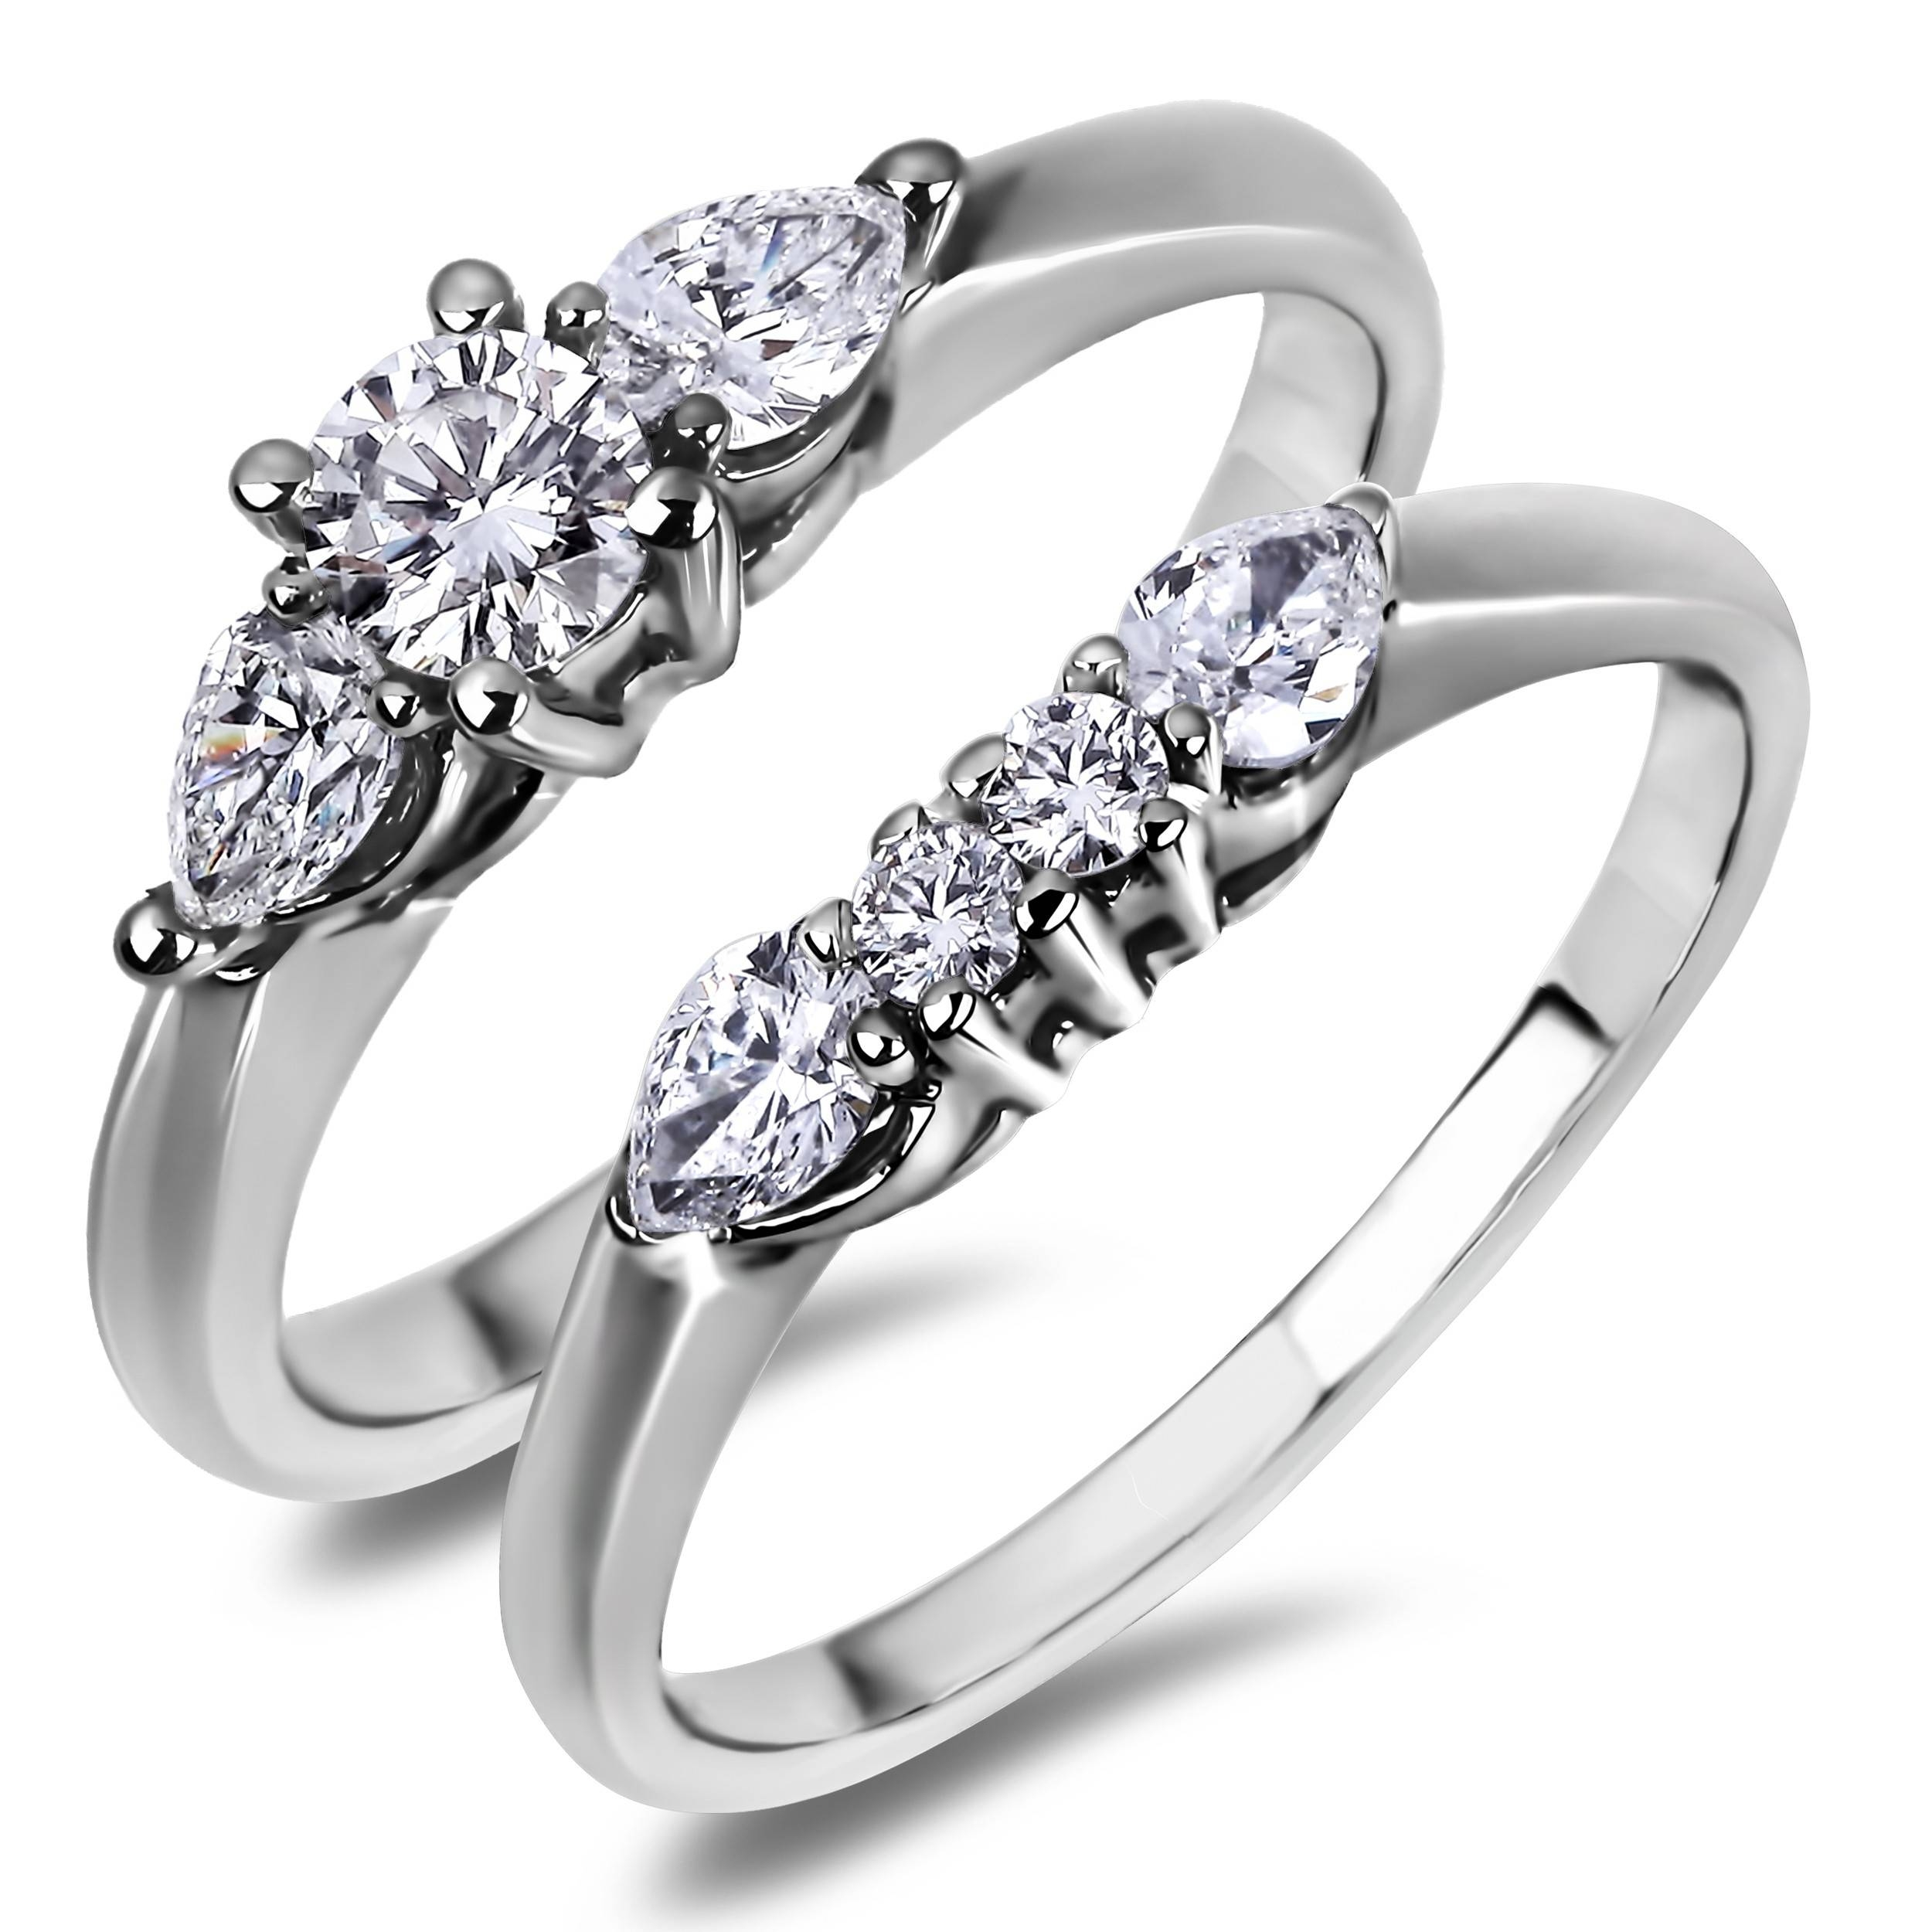 eternity wedding groom diamond rings ring collection